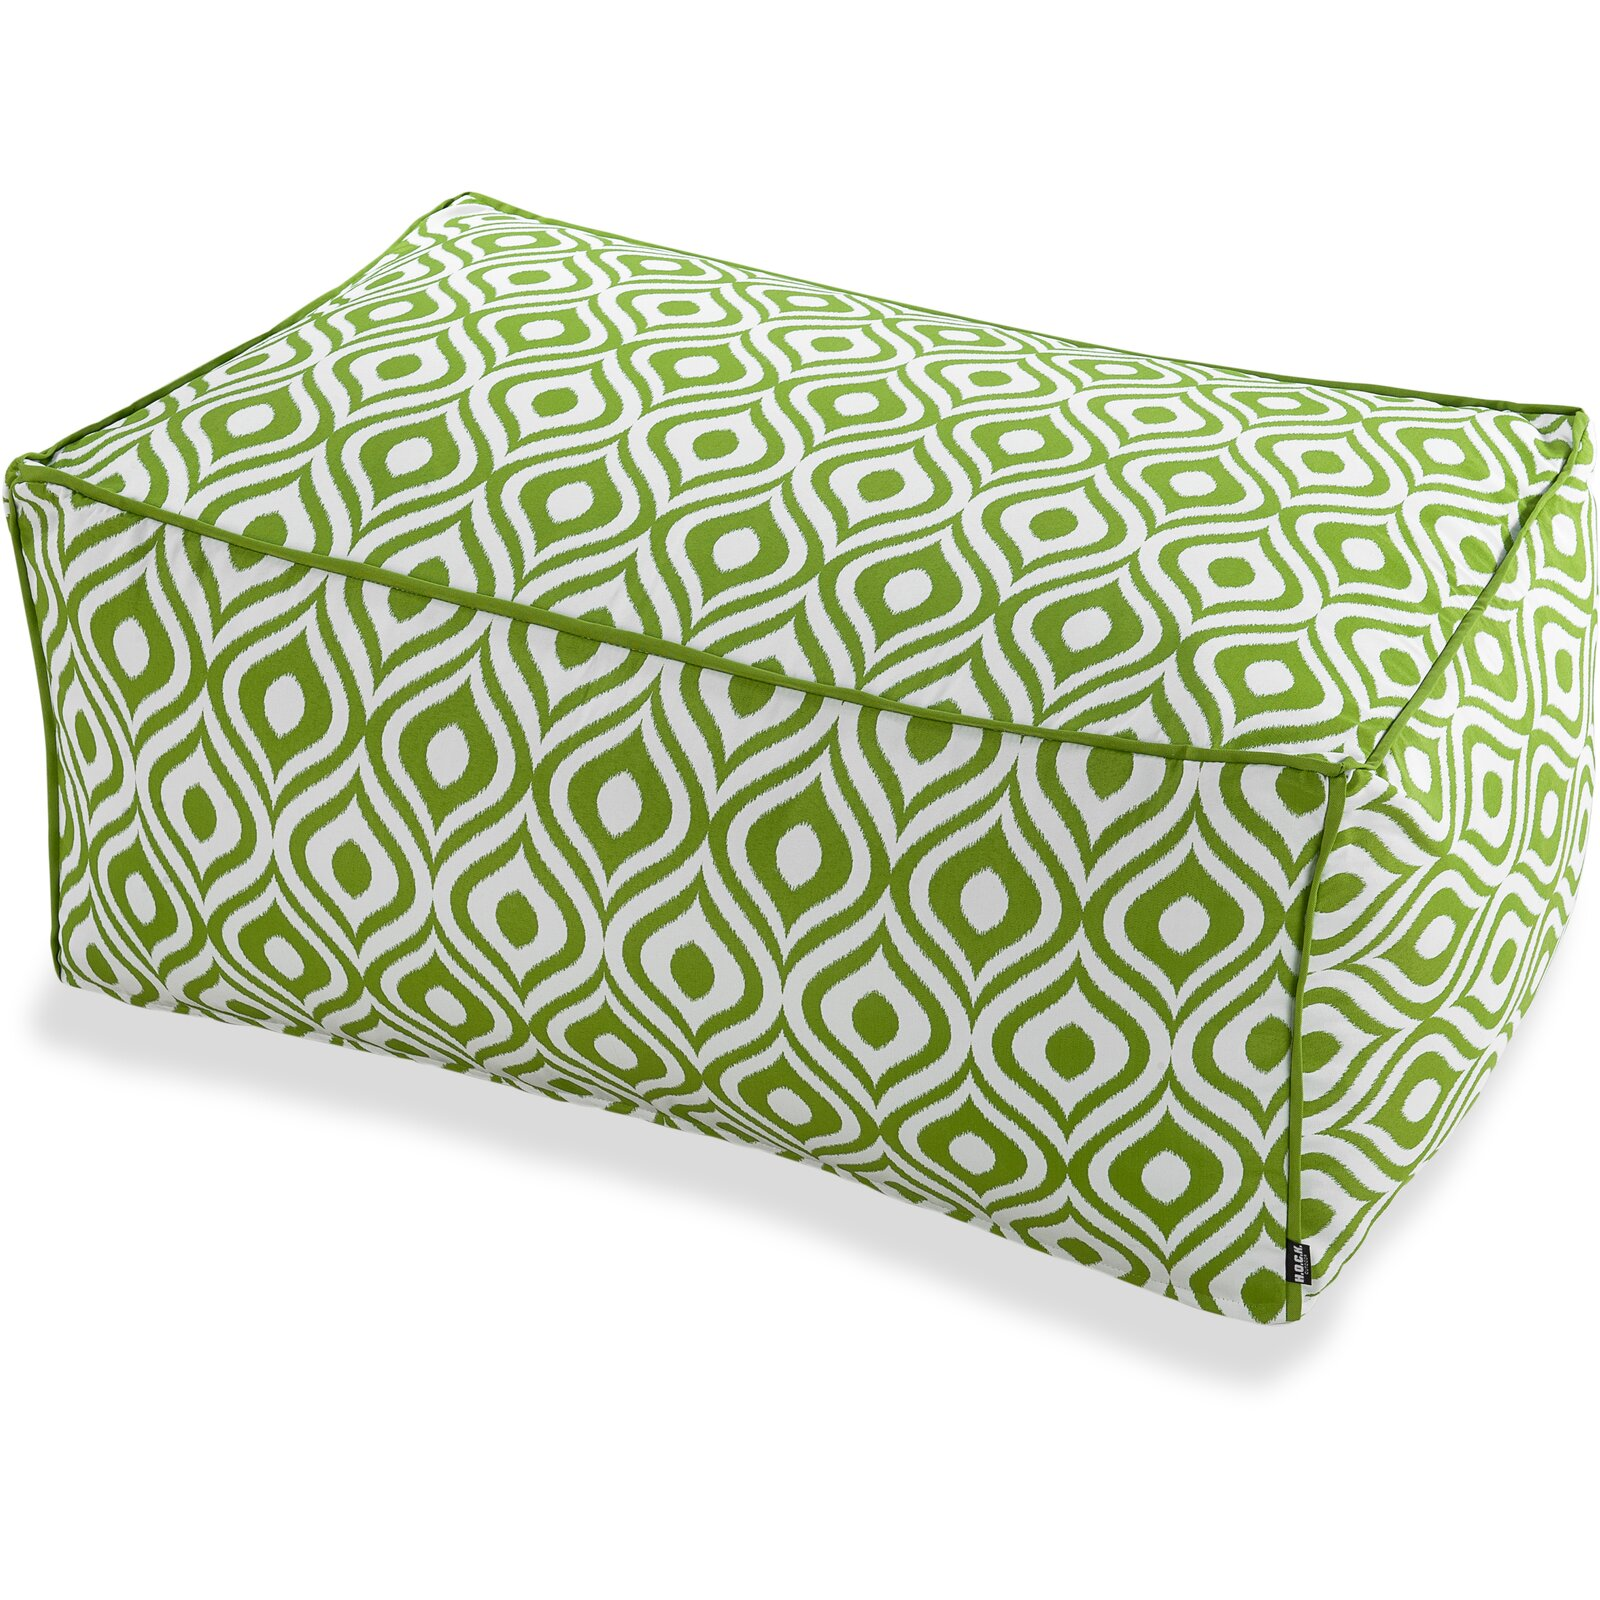 H.O.C.K. Pinamar Outdoor Loungehocker 90x60x40cm green 021 sun